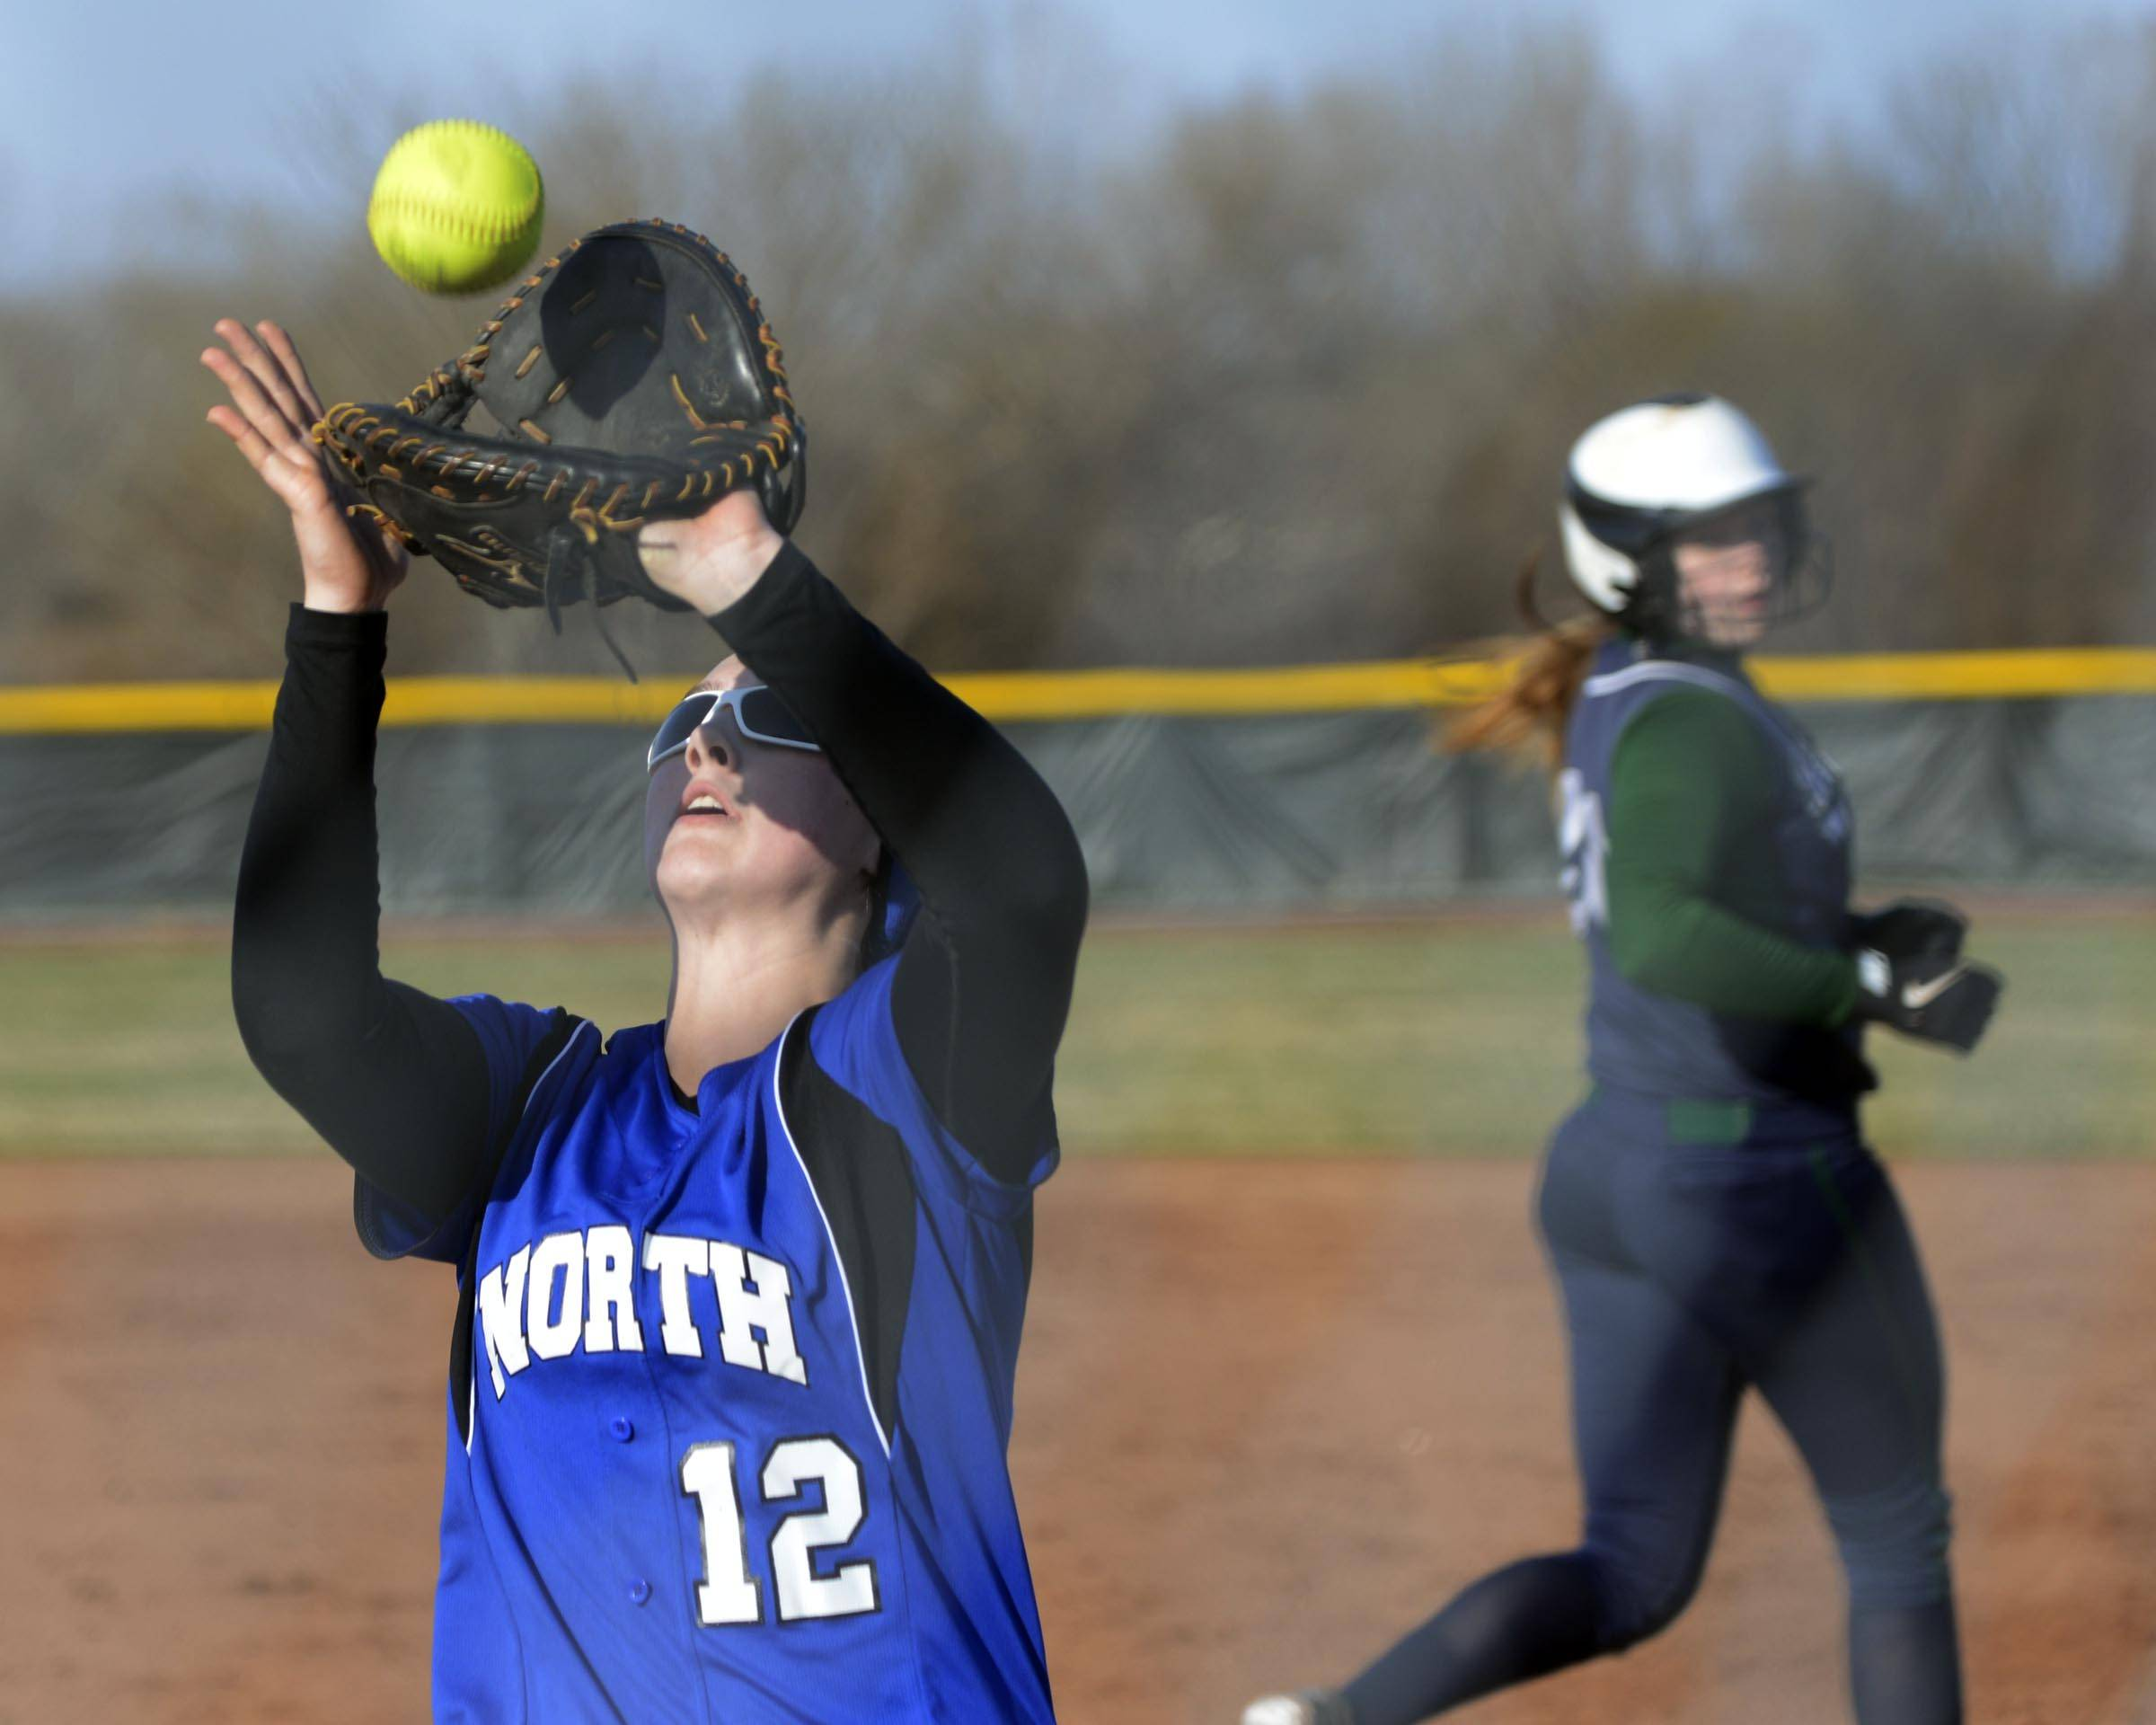 St. Charles North first baseman Abby Howlett catches a pop up earlier this year against Bartlett. Howlett homered in back-to-back games this week and like Troop above leads her team in RBI.